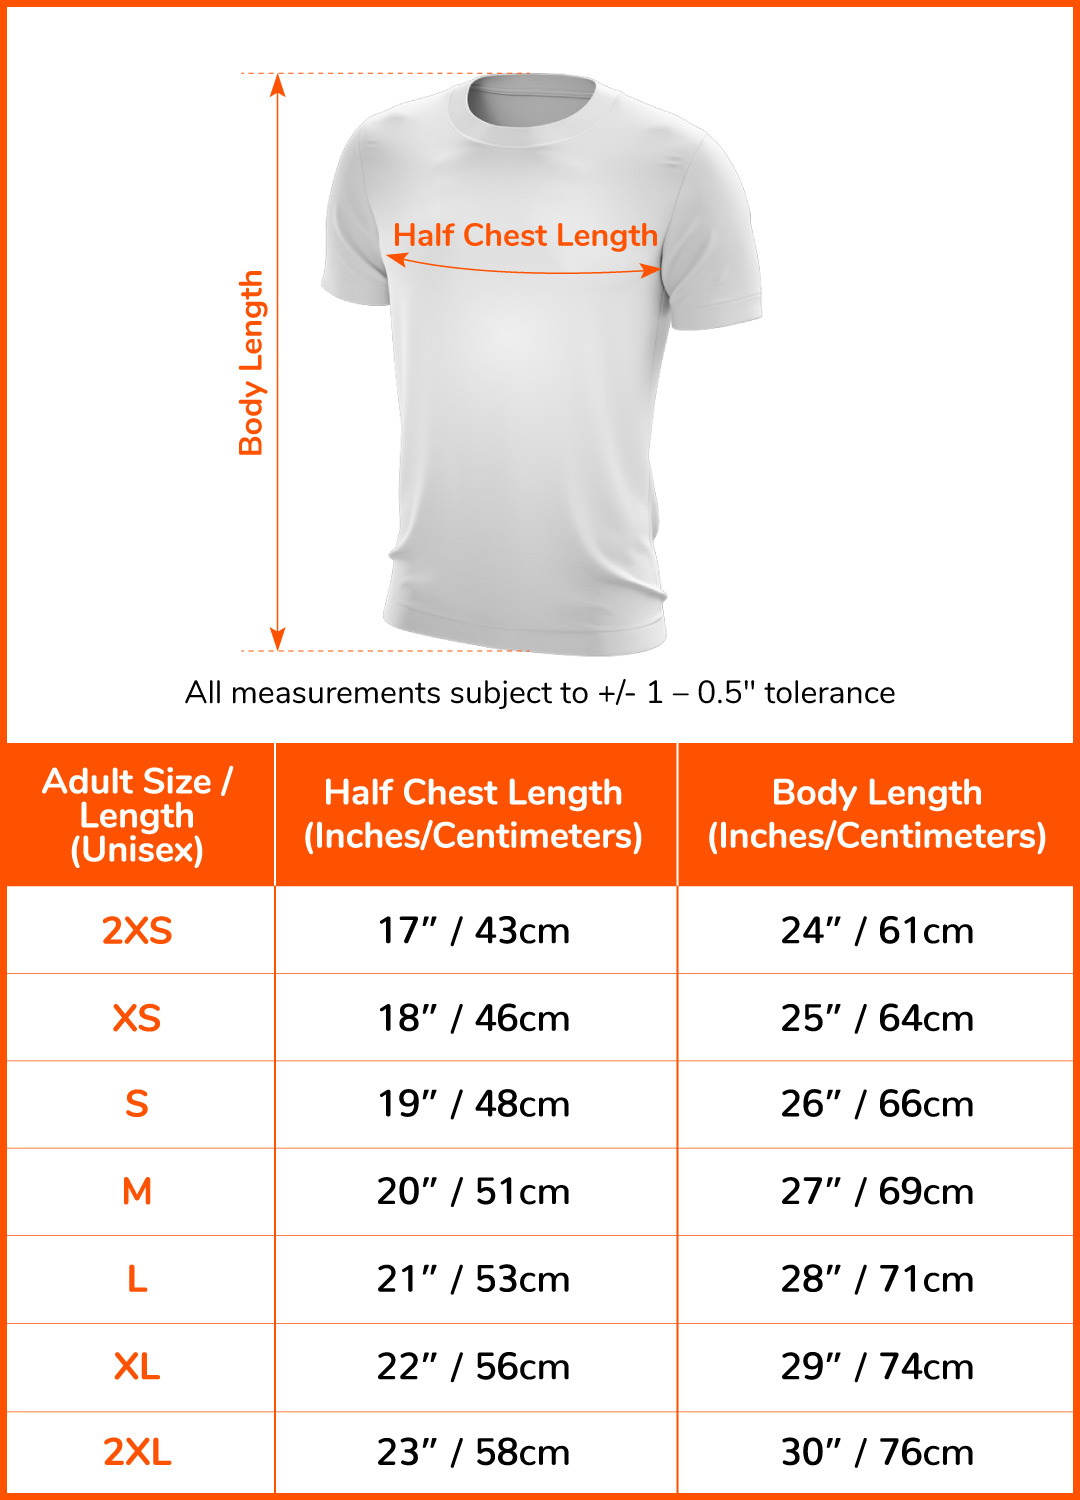 Finisher T-Shirt - 6.7km#size-chart